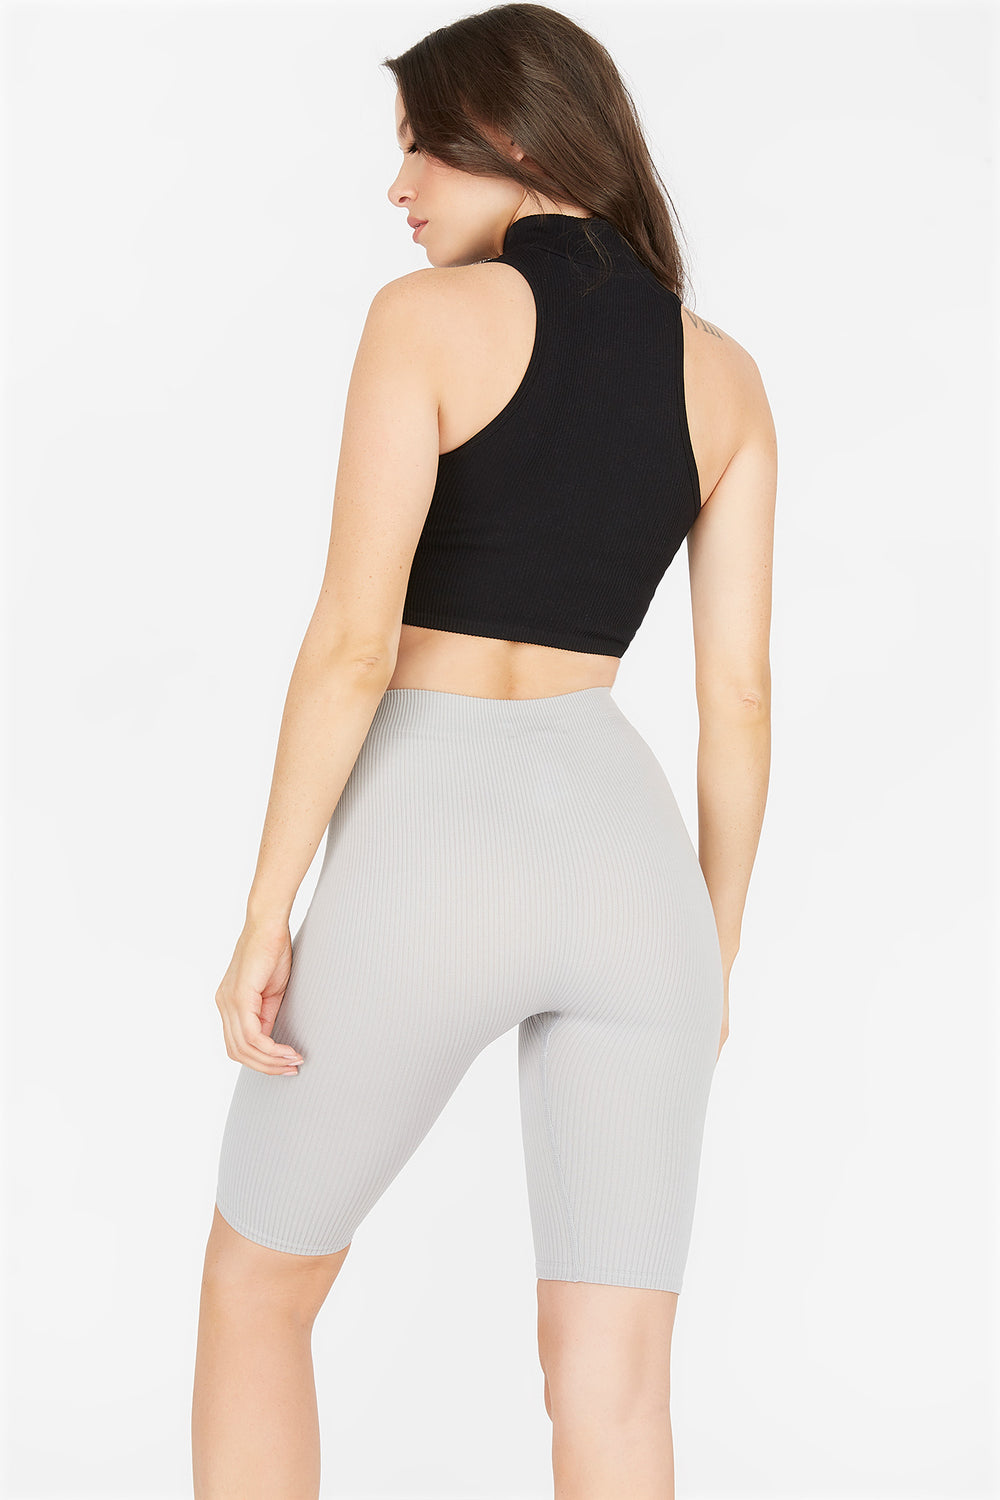 High-Rise Ribbed Longline Biker Short Heather Grey